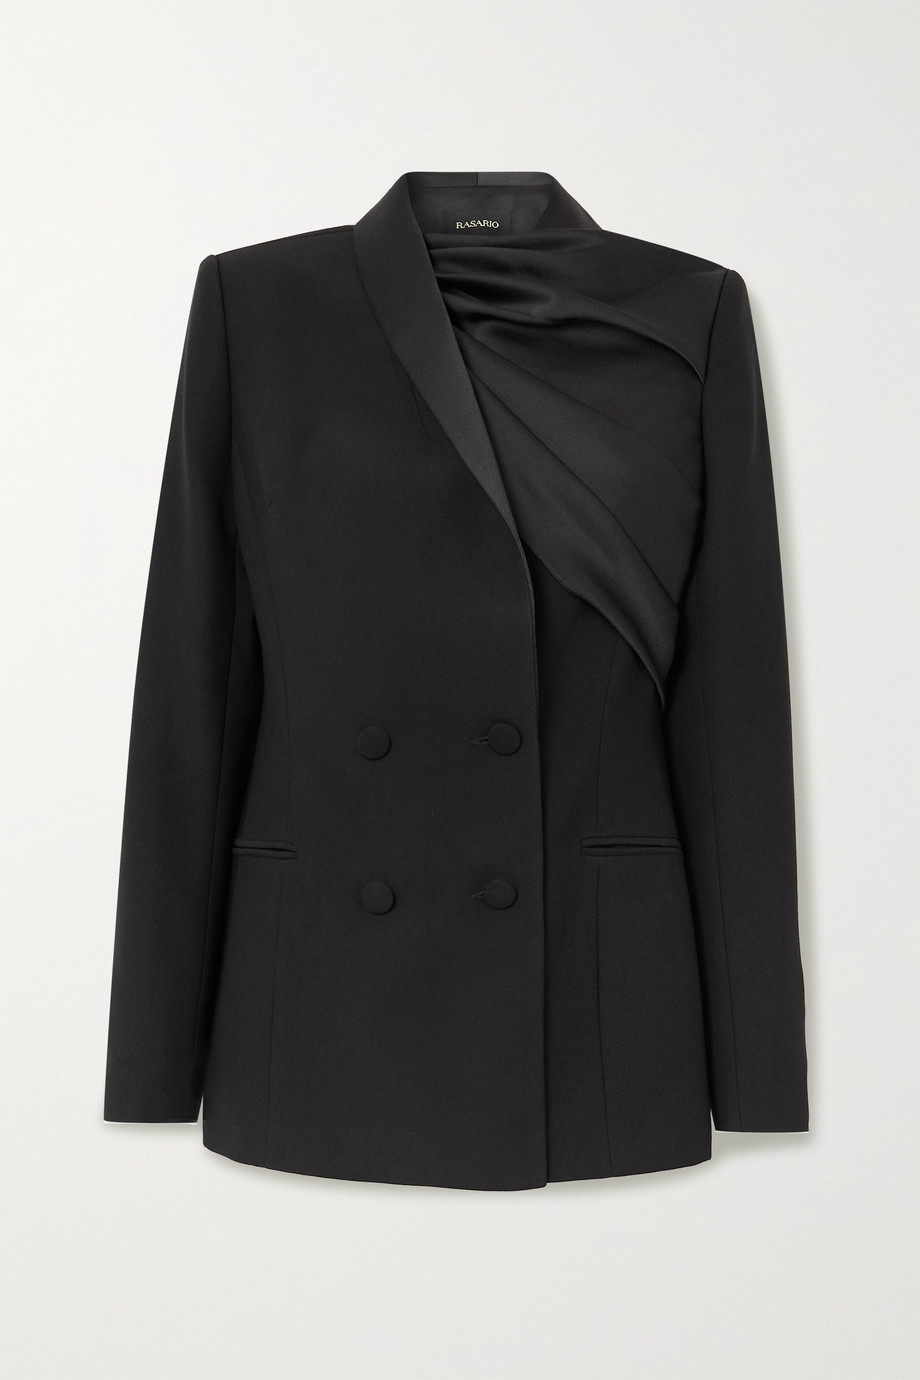 RASARIO Draped satin and crepe double-breasted blazer